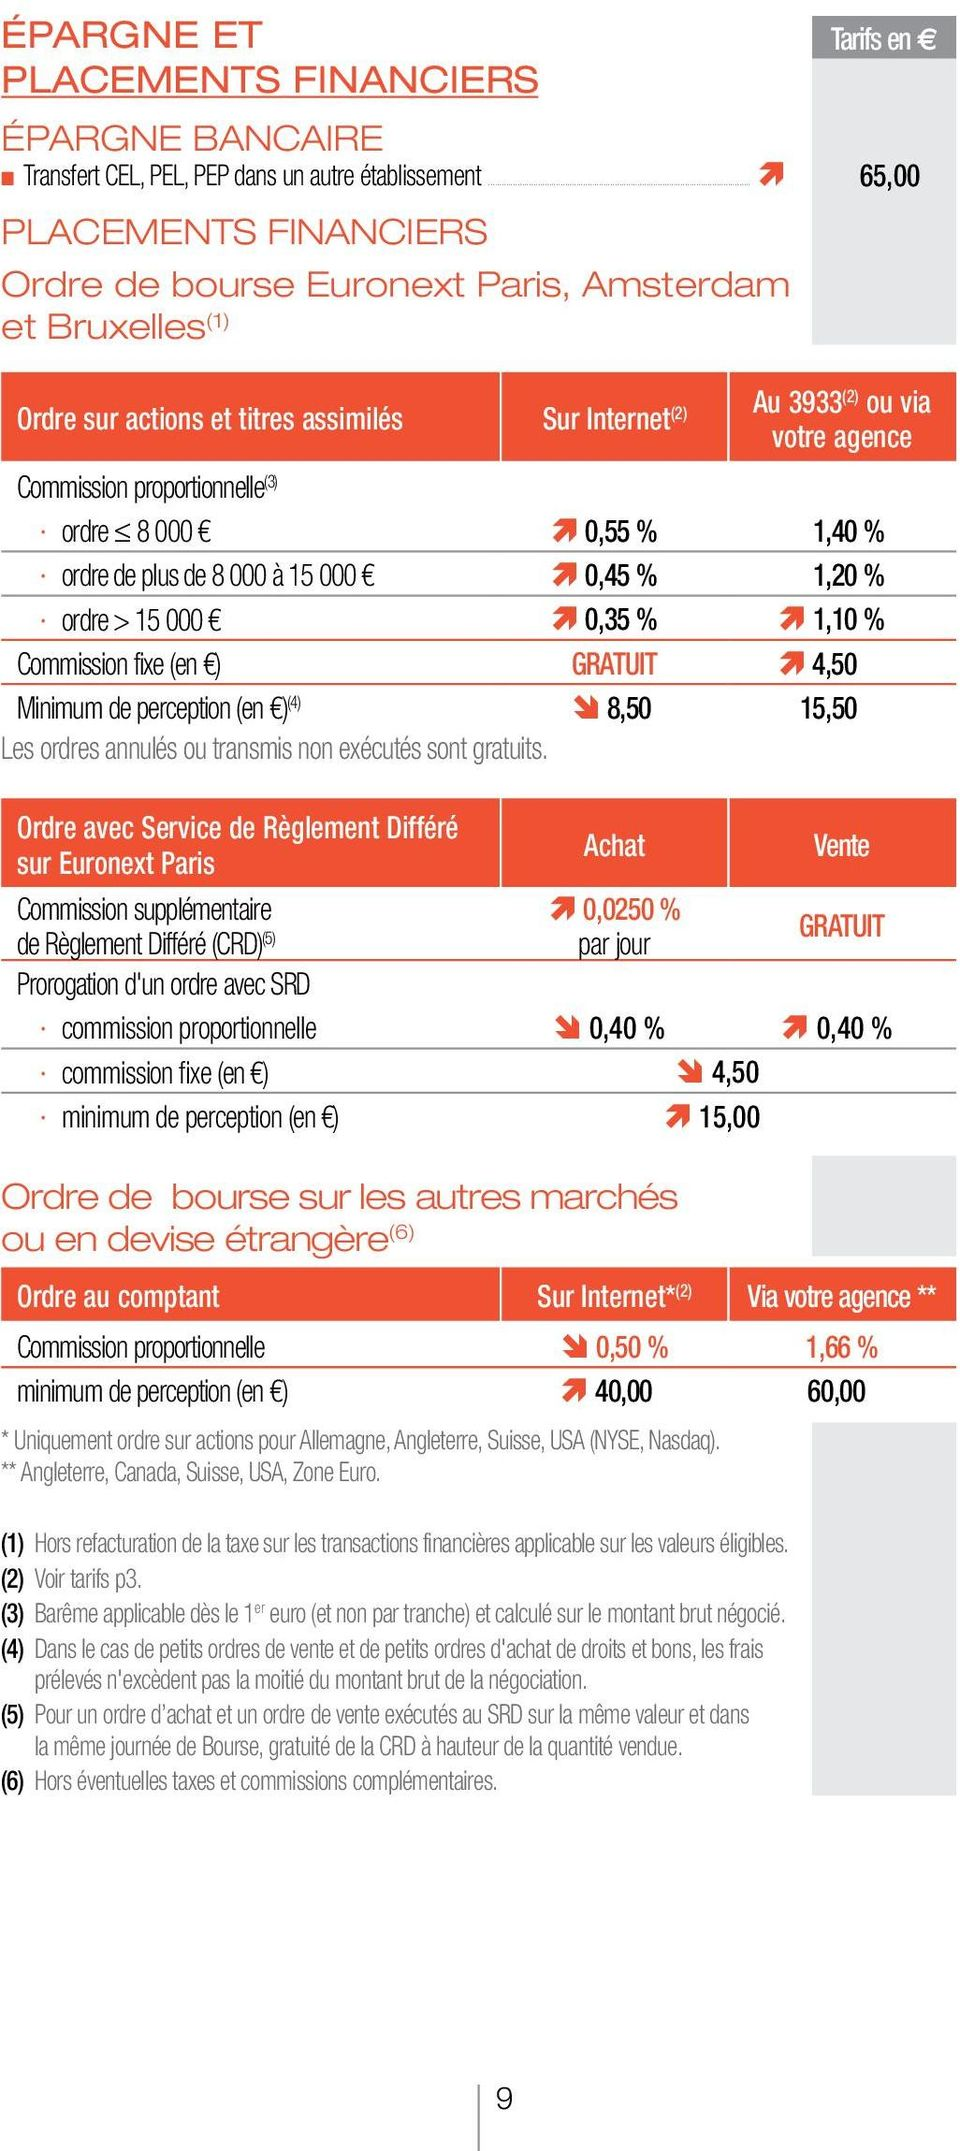 proportionnelle (3) ordre 8 000 0,55 % 1,40 % ordre de plus de 8 000 à 15 000 0,45 % 1,20 % ordre > 15 000 0,35 % 1,10 % Commission fixe (en ) Gratuit 4,50 Minimum de perception (en ) (4) 8,50 15,50